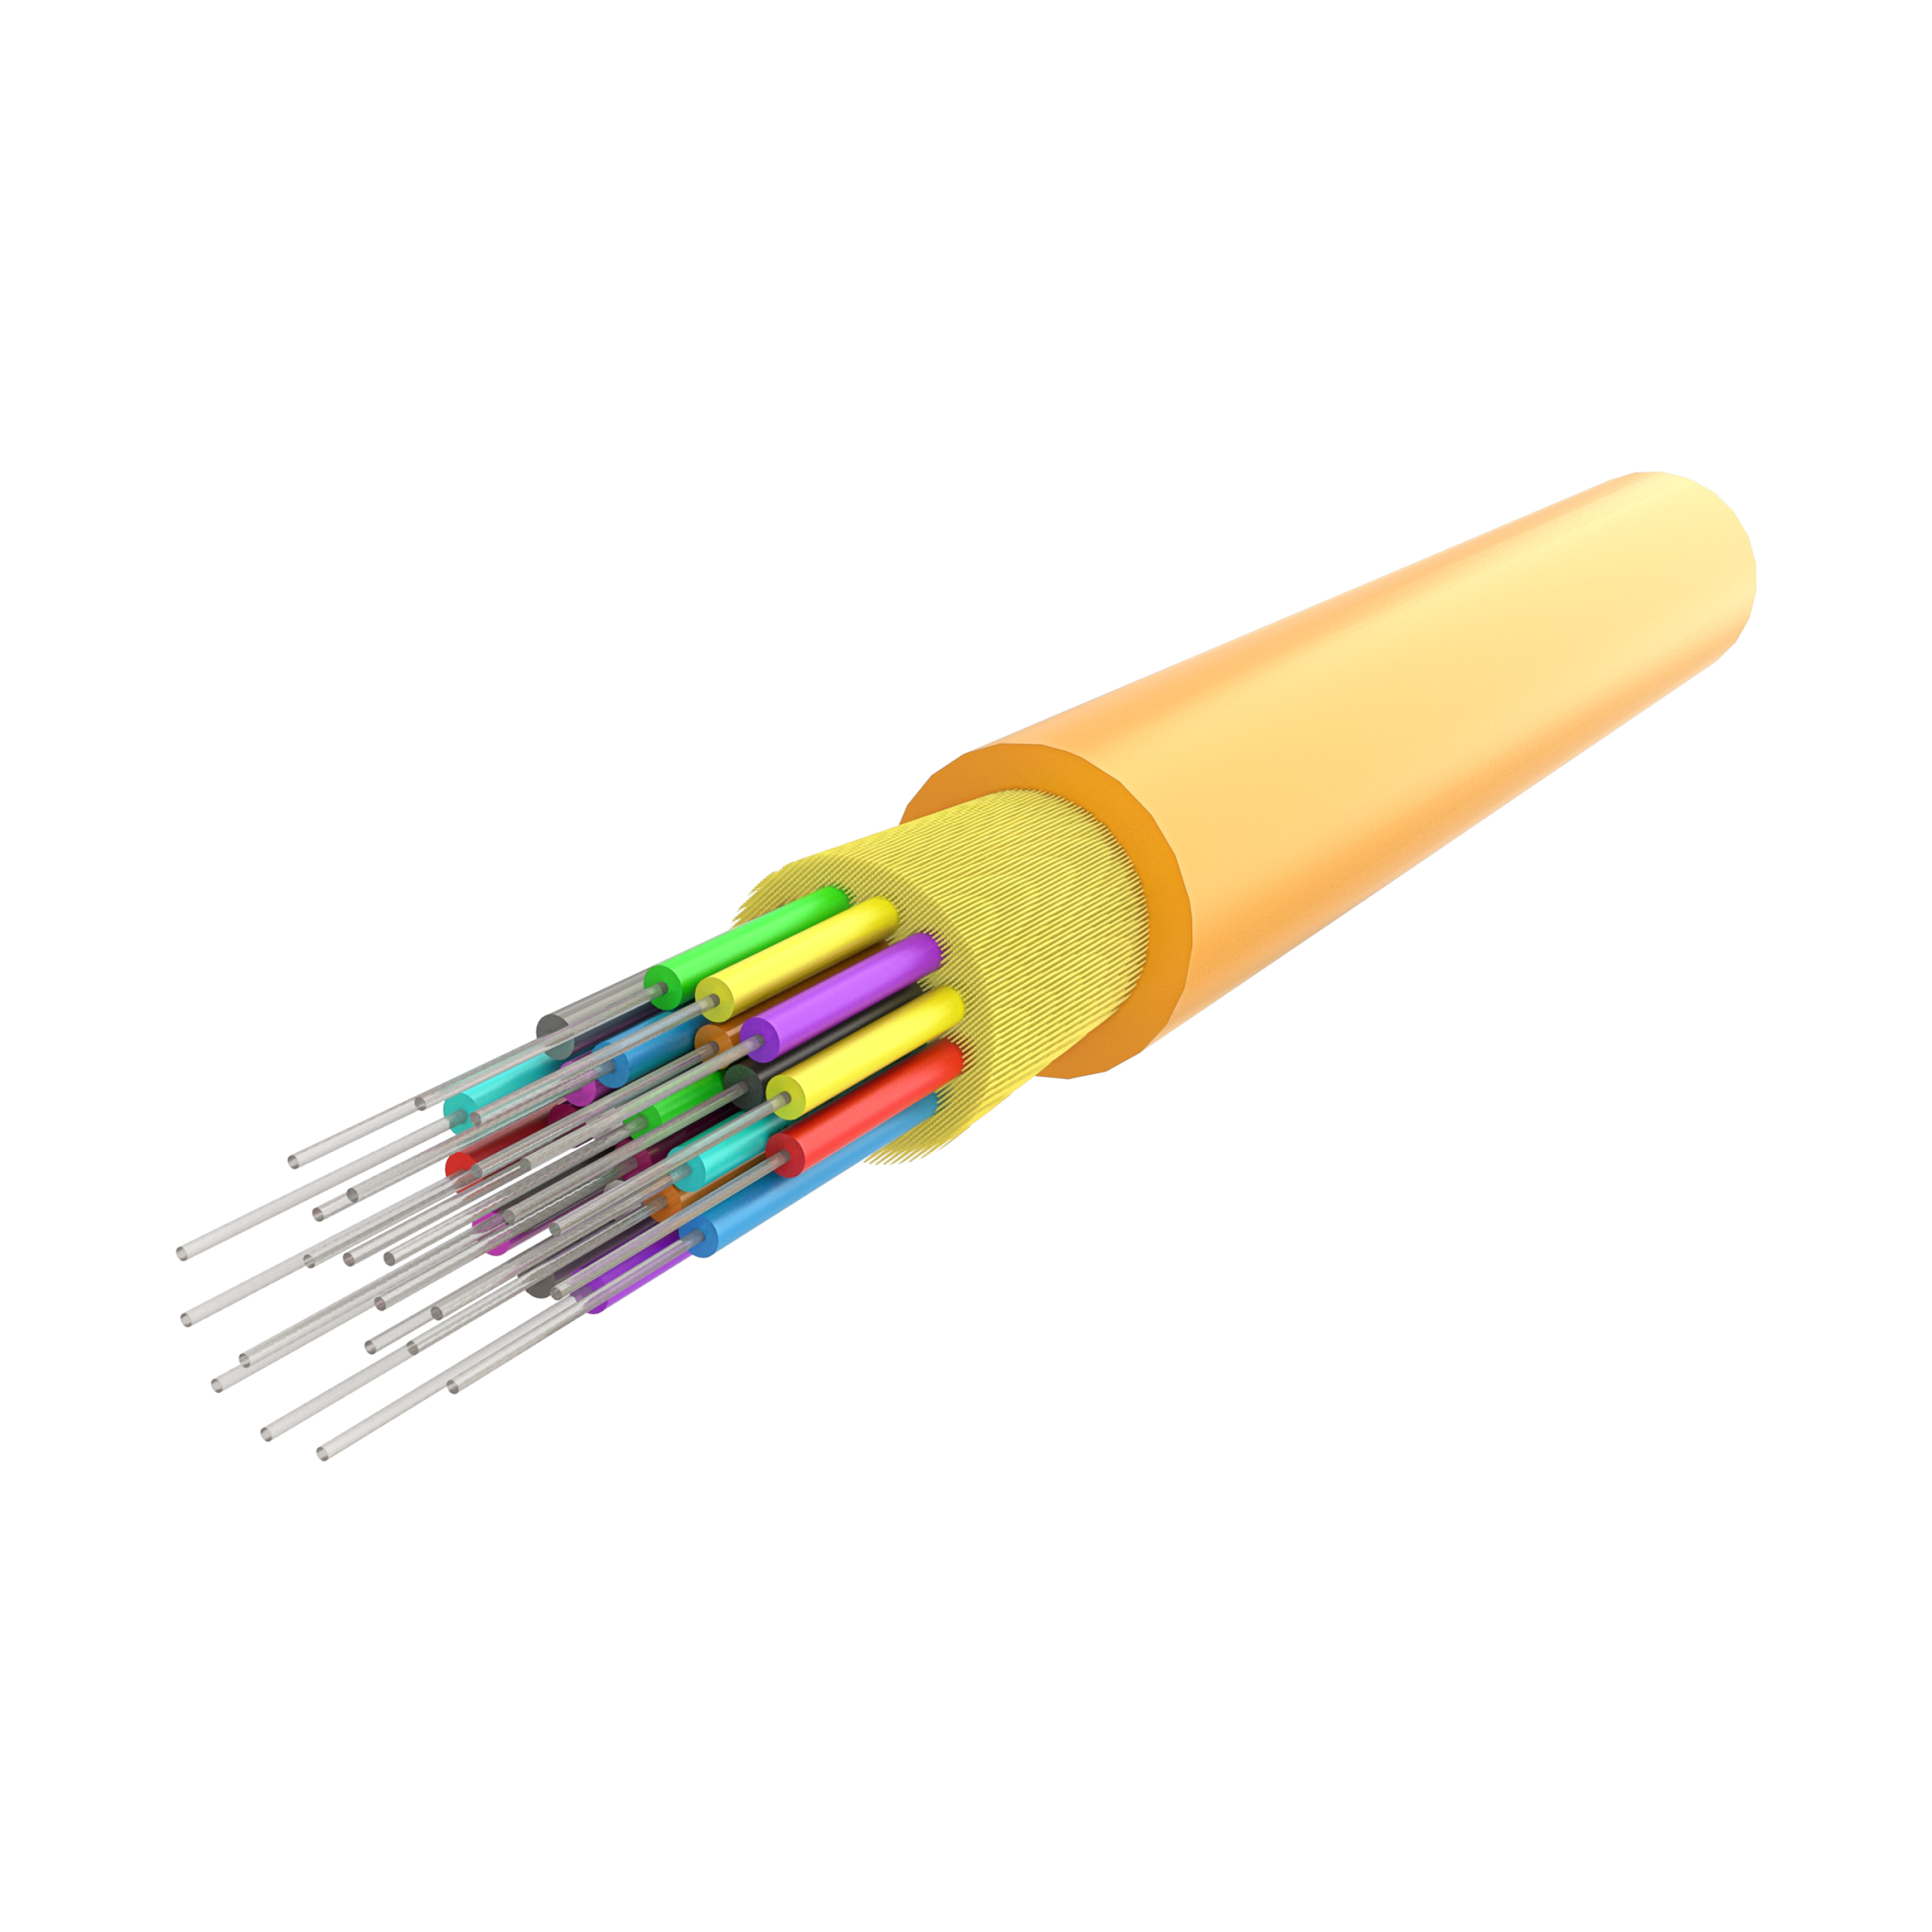 Mini Breakout Cable 7.2 mm   I-V(ZN)H 1x24   1000 meters